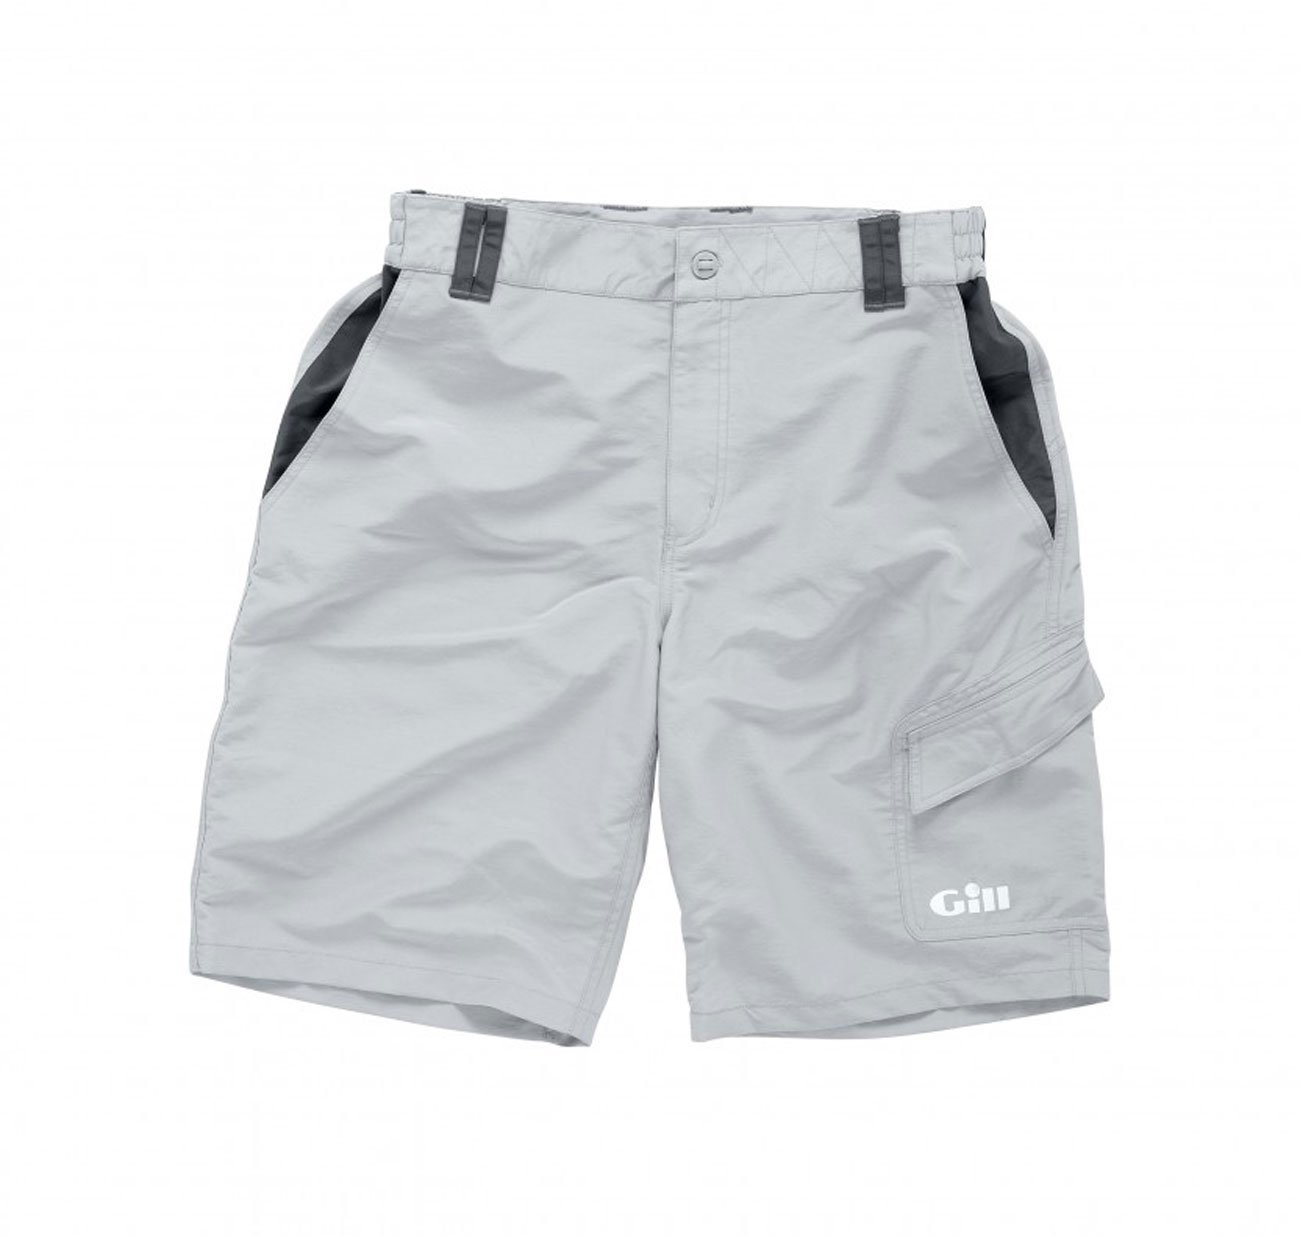 c64b6060284d Gill Performance Sailing Shorts Graphite 1644  Amazon.co.uk  Sports ...